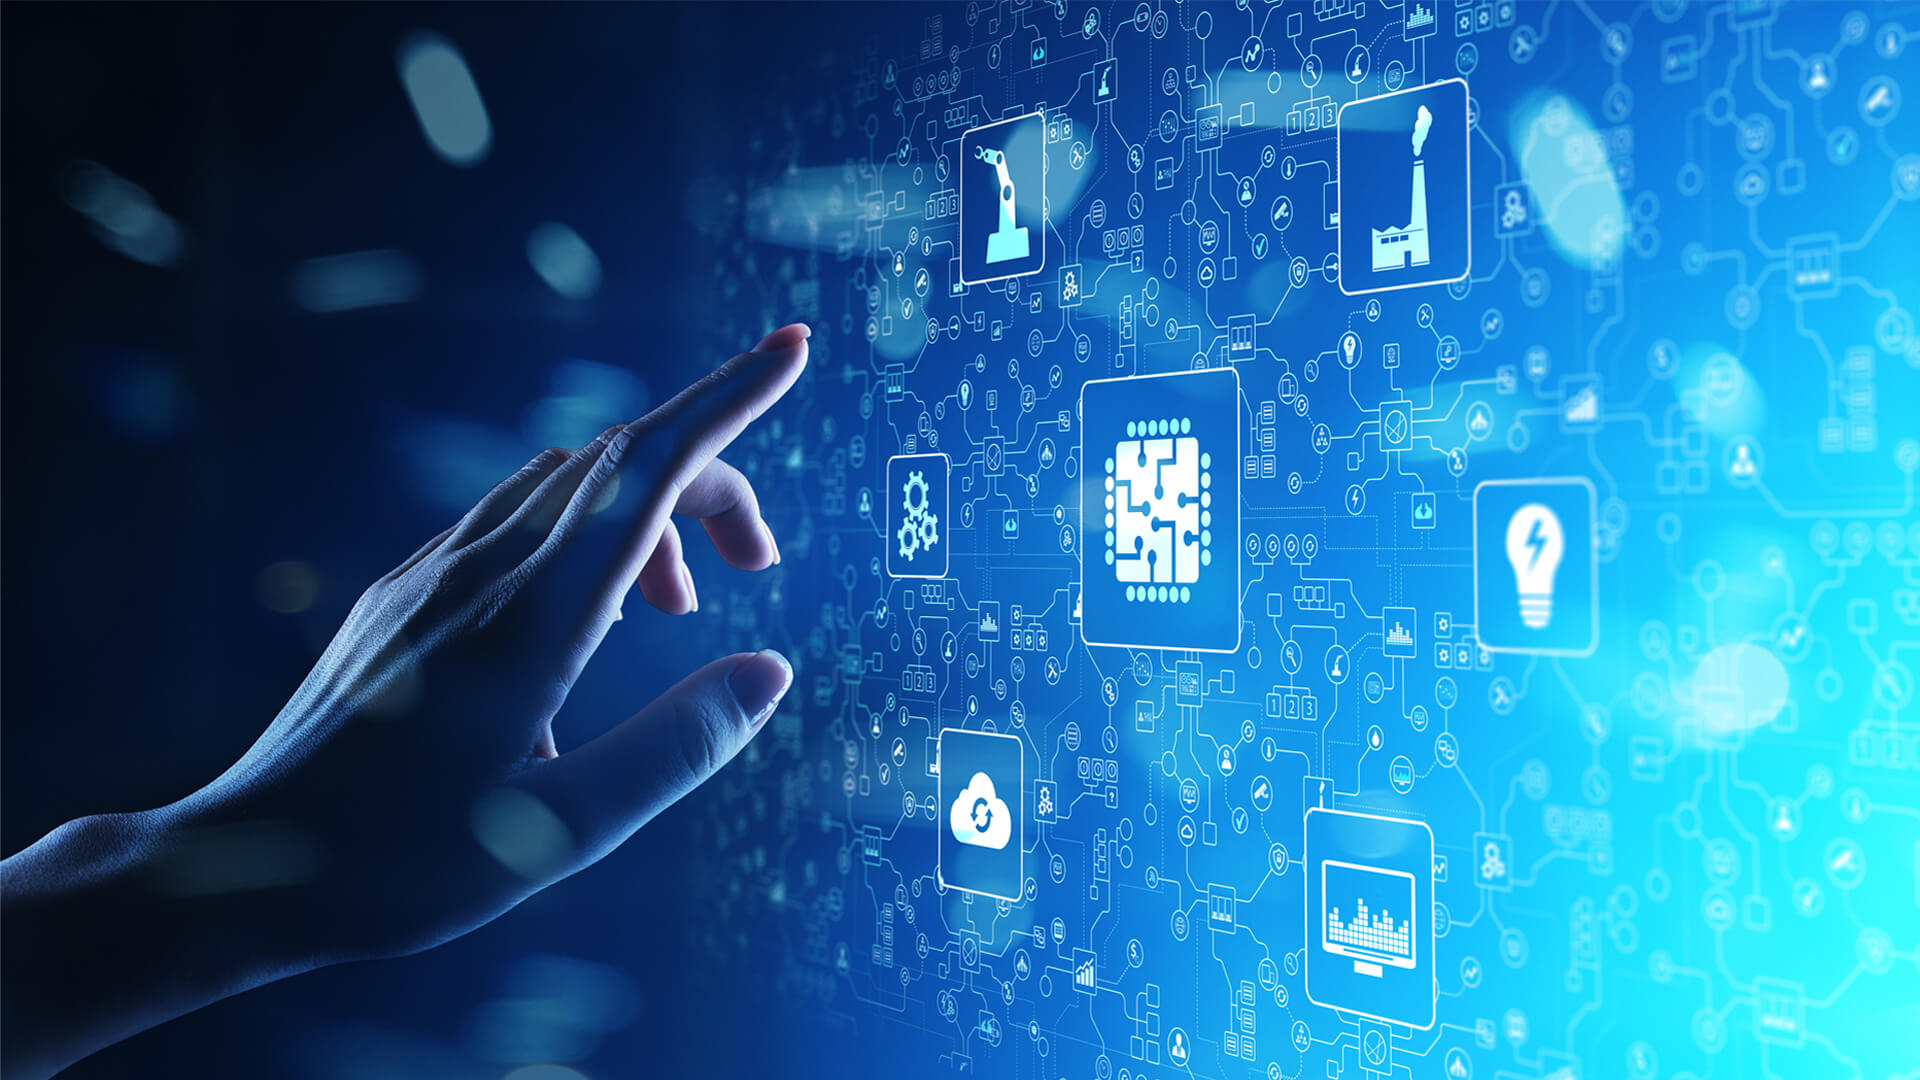 Enabling assurance across the digital transformation program for a Fortune 50 Insurance Company